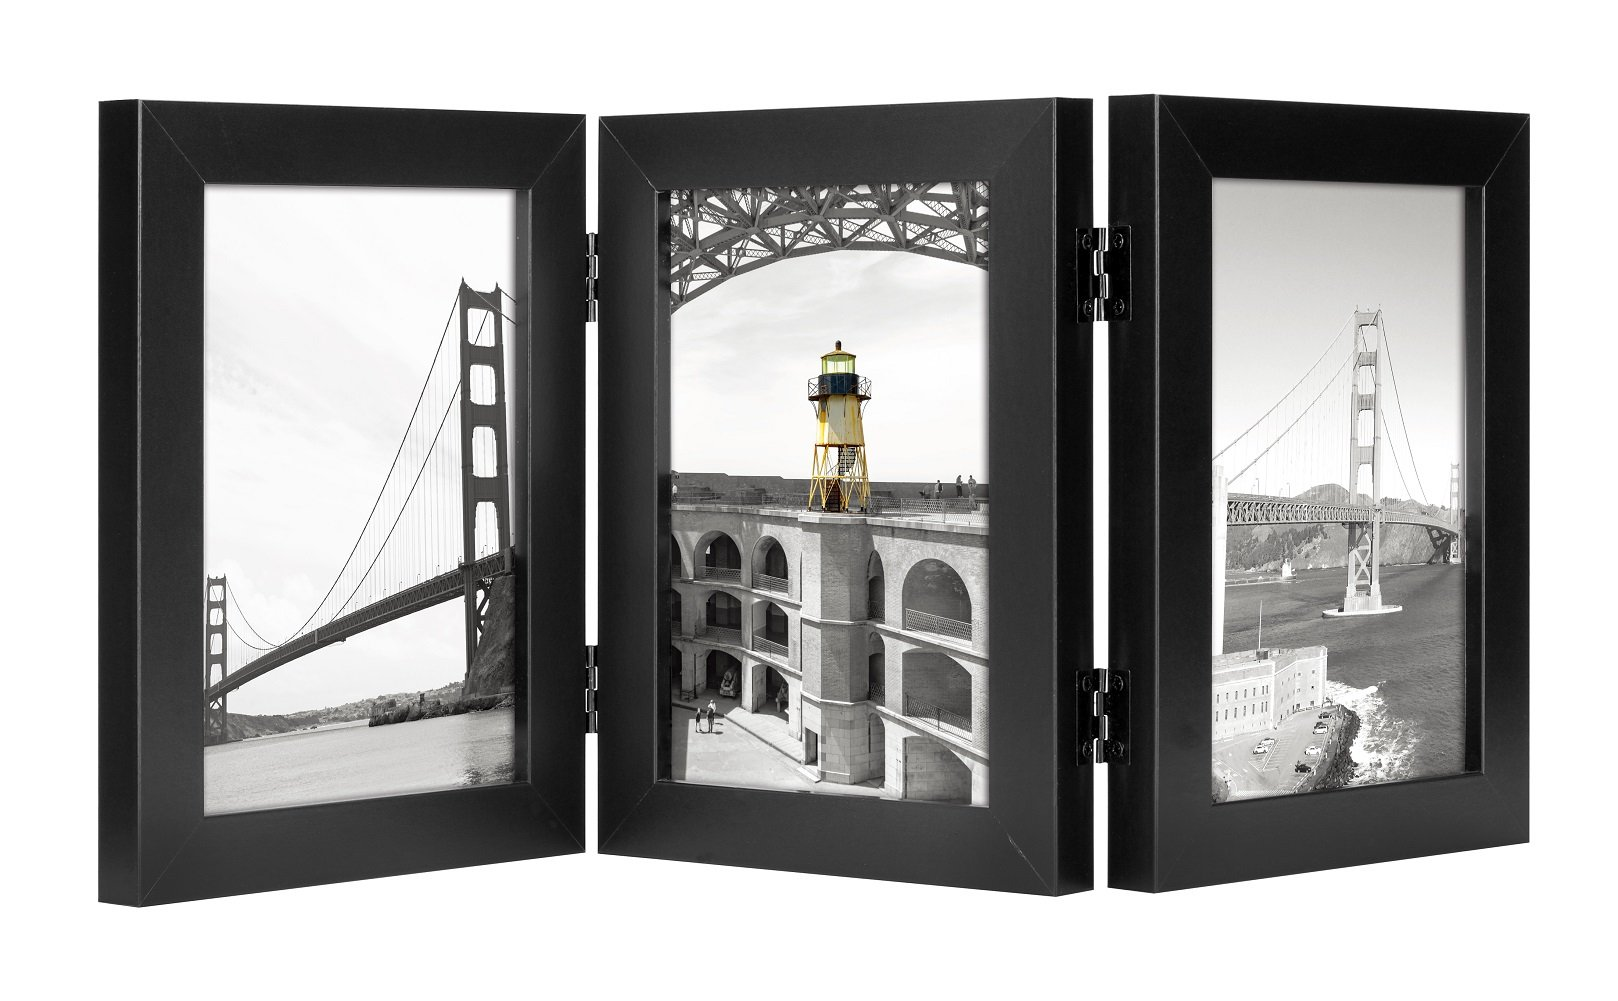 Frametory, 5x7 Inch Hinged Picture Frame with Glass Front - Made to Display Three 5x7 Inch Pictures, Stands Vertically on Desktop or Table Top (5x7-3, Black)